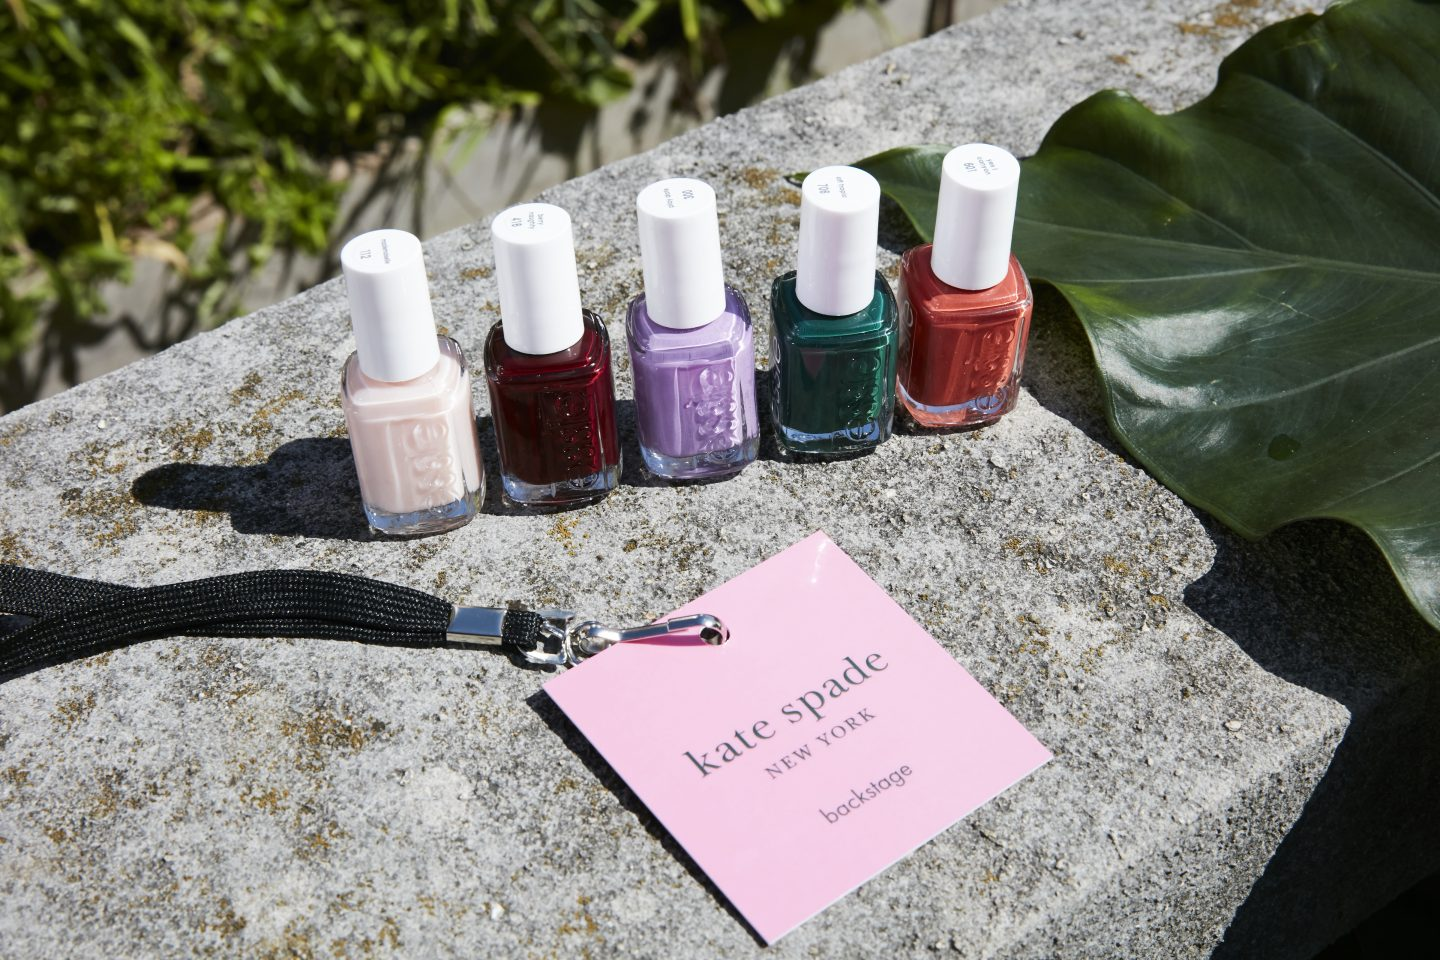 ESSIE FW Sep 2019 Kate Spade Rita Remark Statement Colors Shades Essie NYFW pastels neons darks Sincerely Humble Blog 2